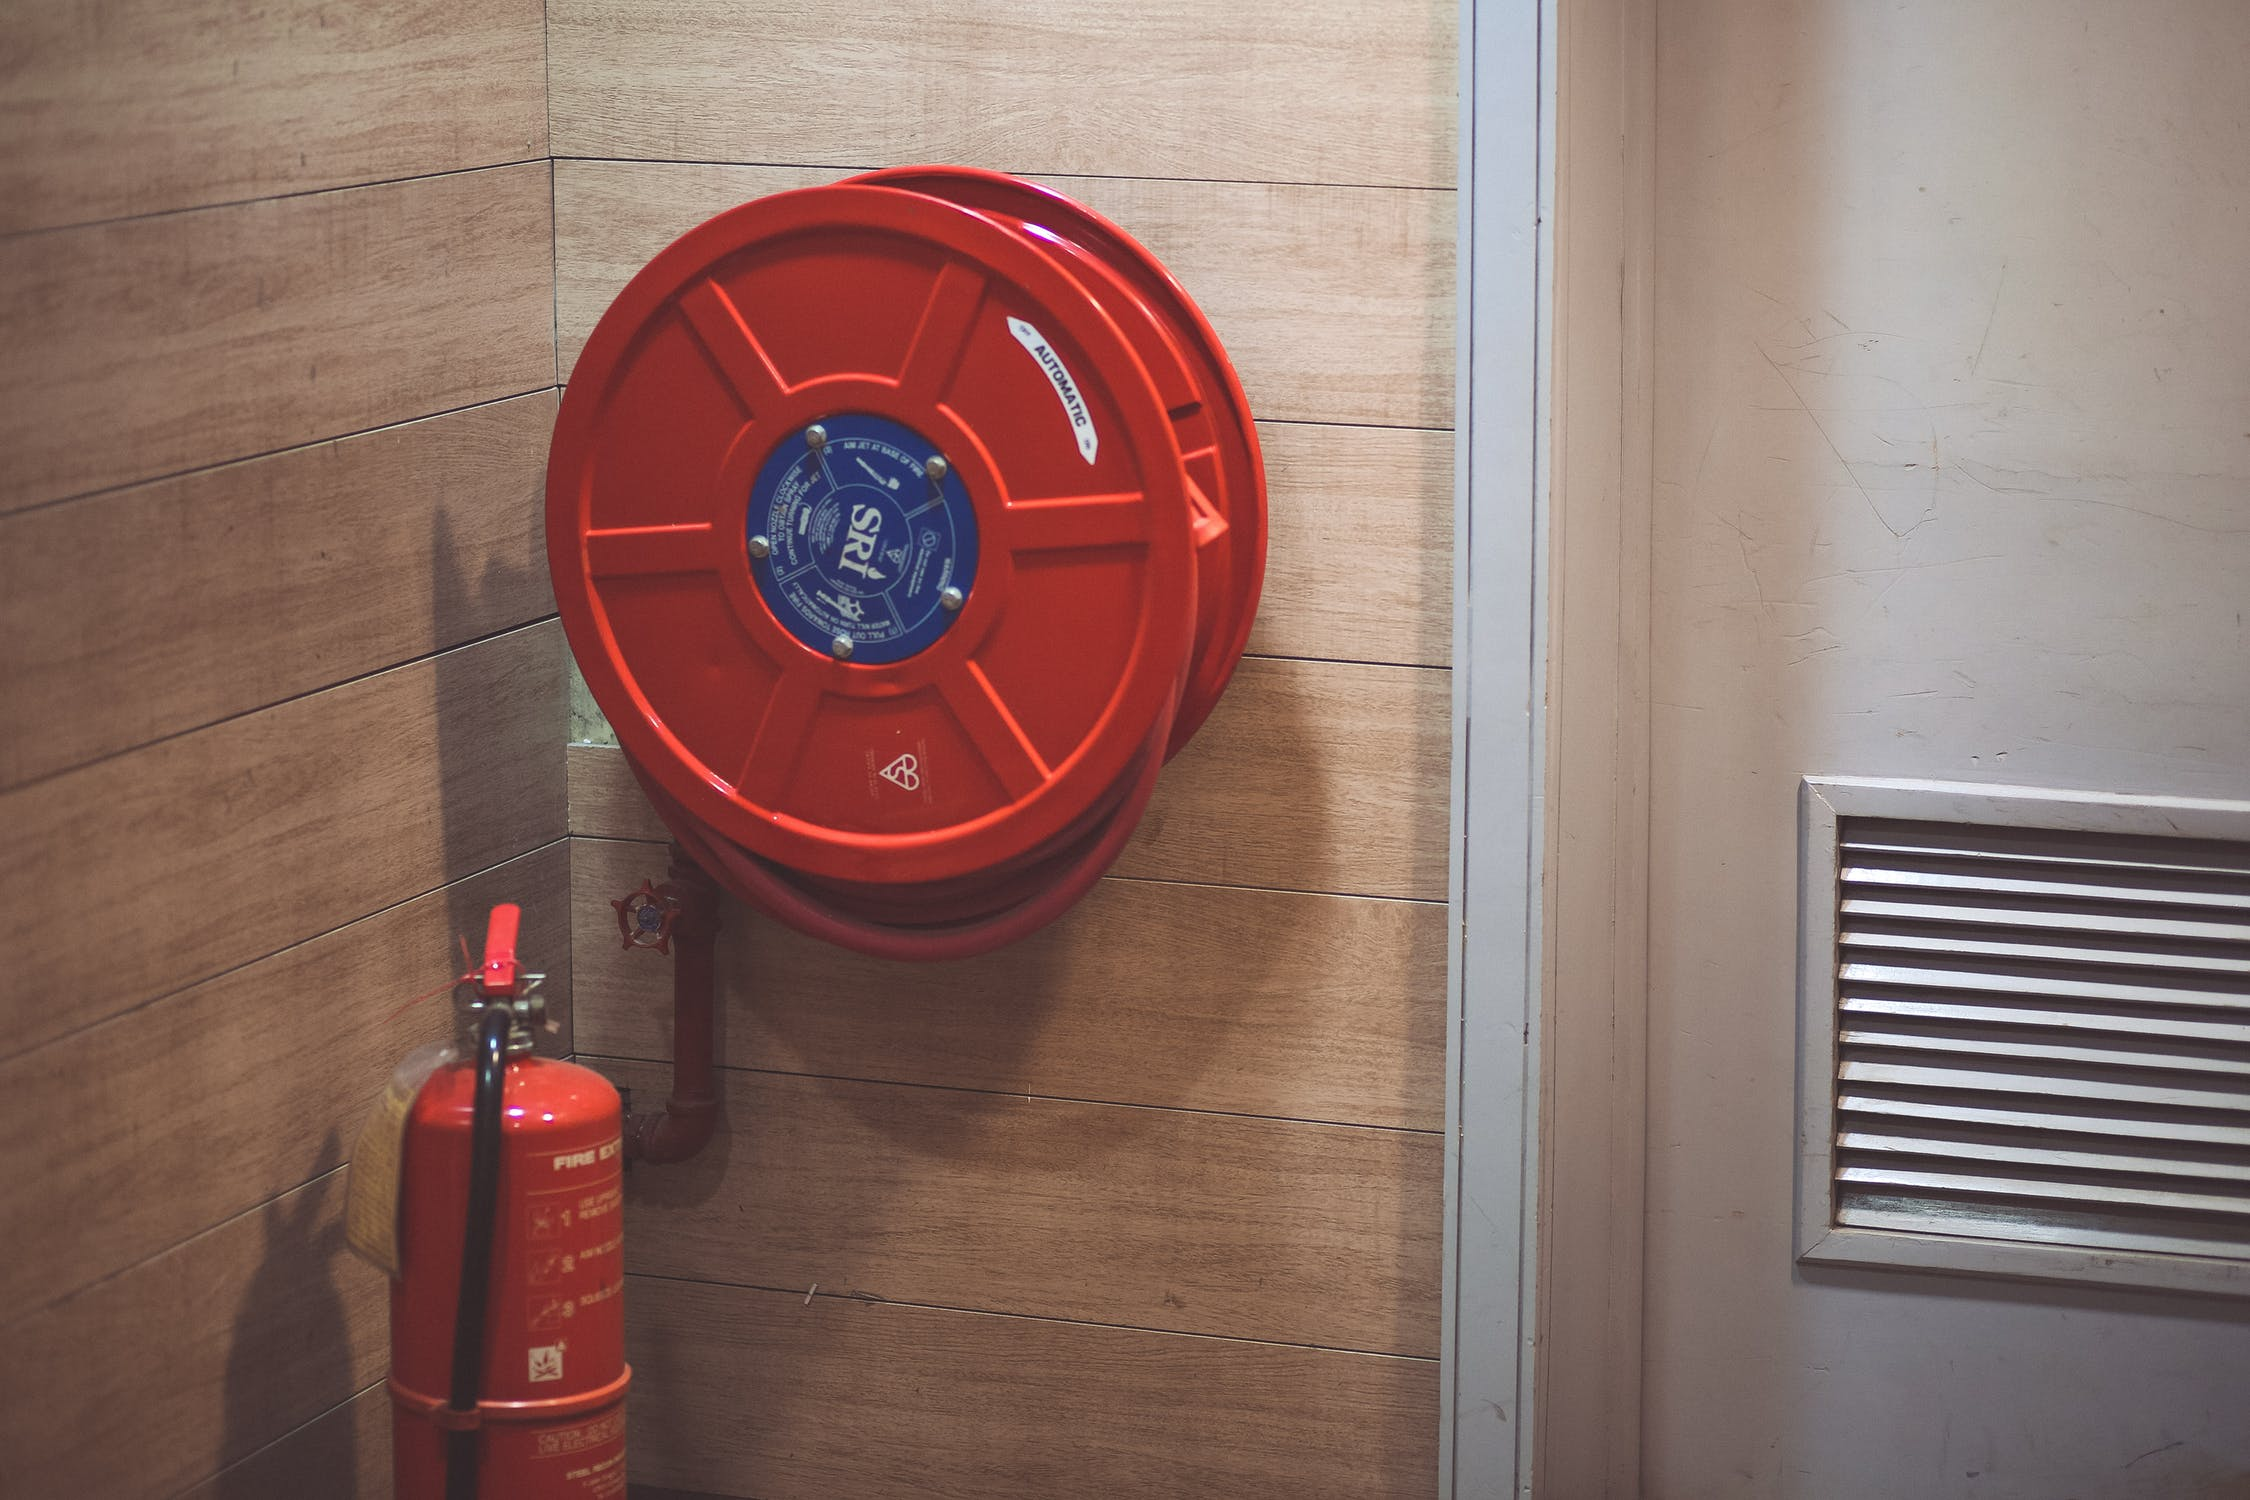 osha required annual refresher training portable fire extinguishers pa pennsylvania philadelphia delaware county new jersey